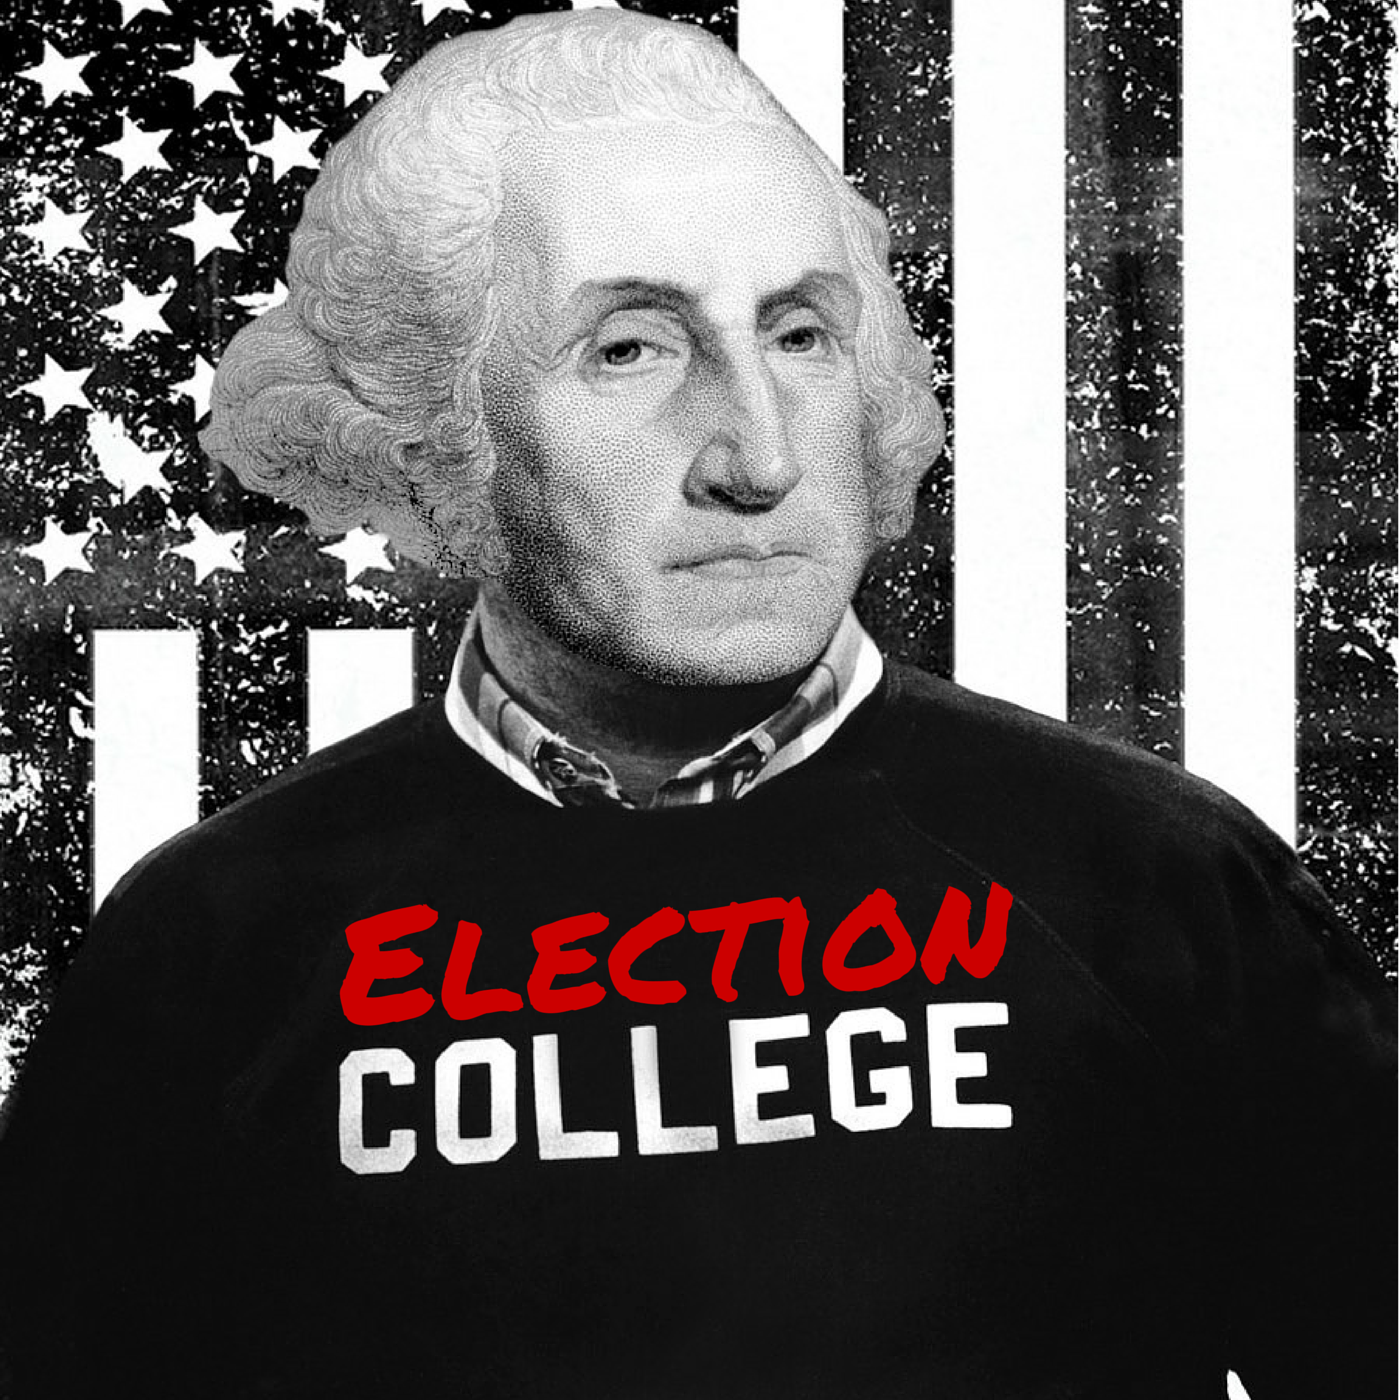 James Buchanan - Part 2 | Episode #197 | Election College: United States Presidential Election History